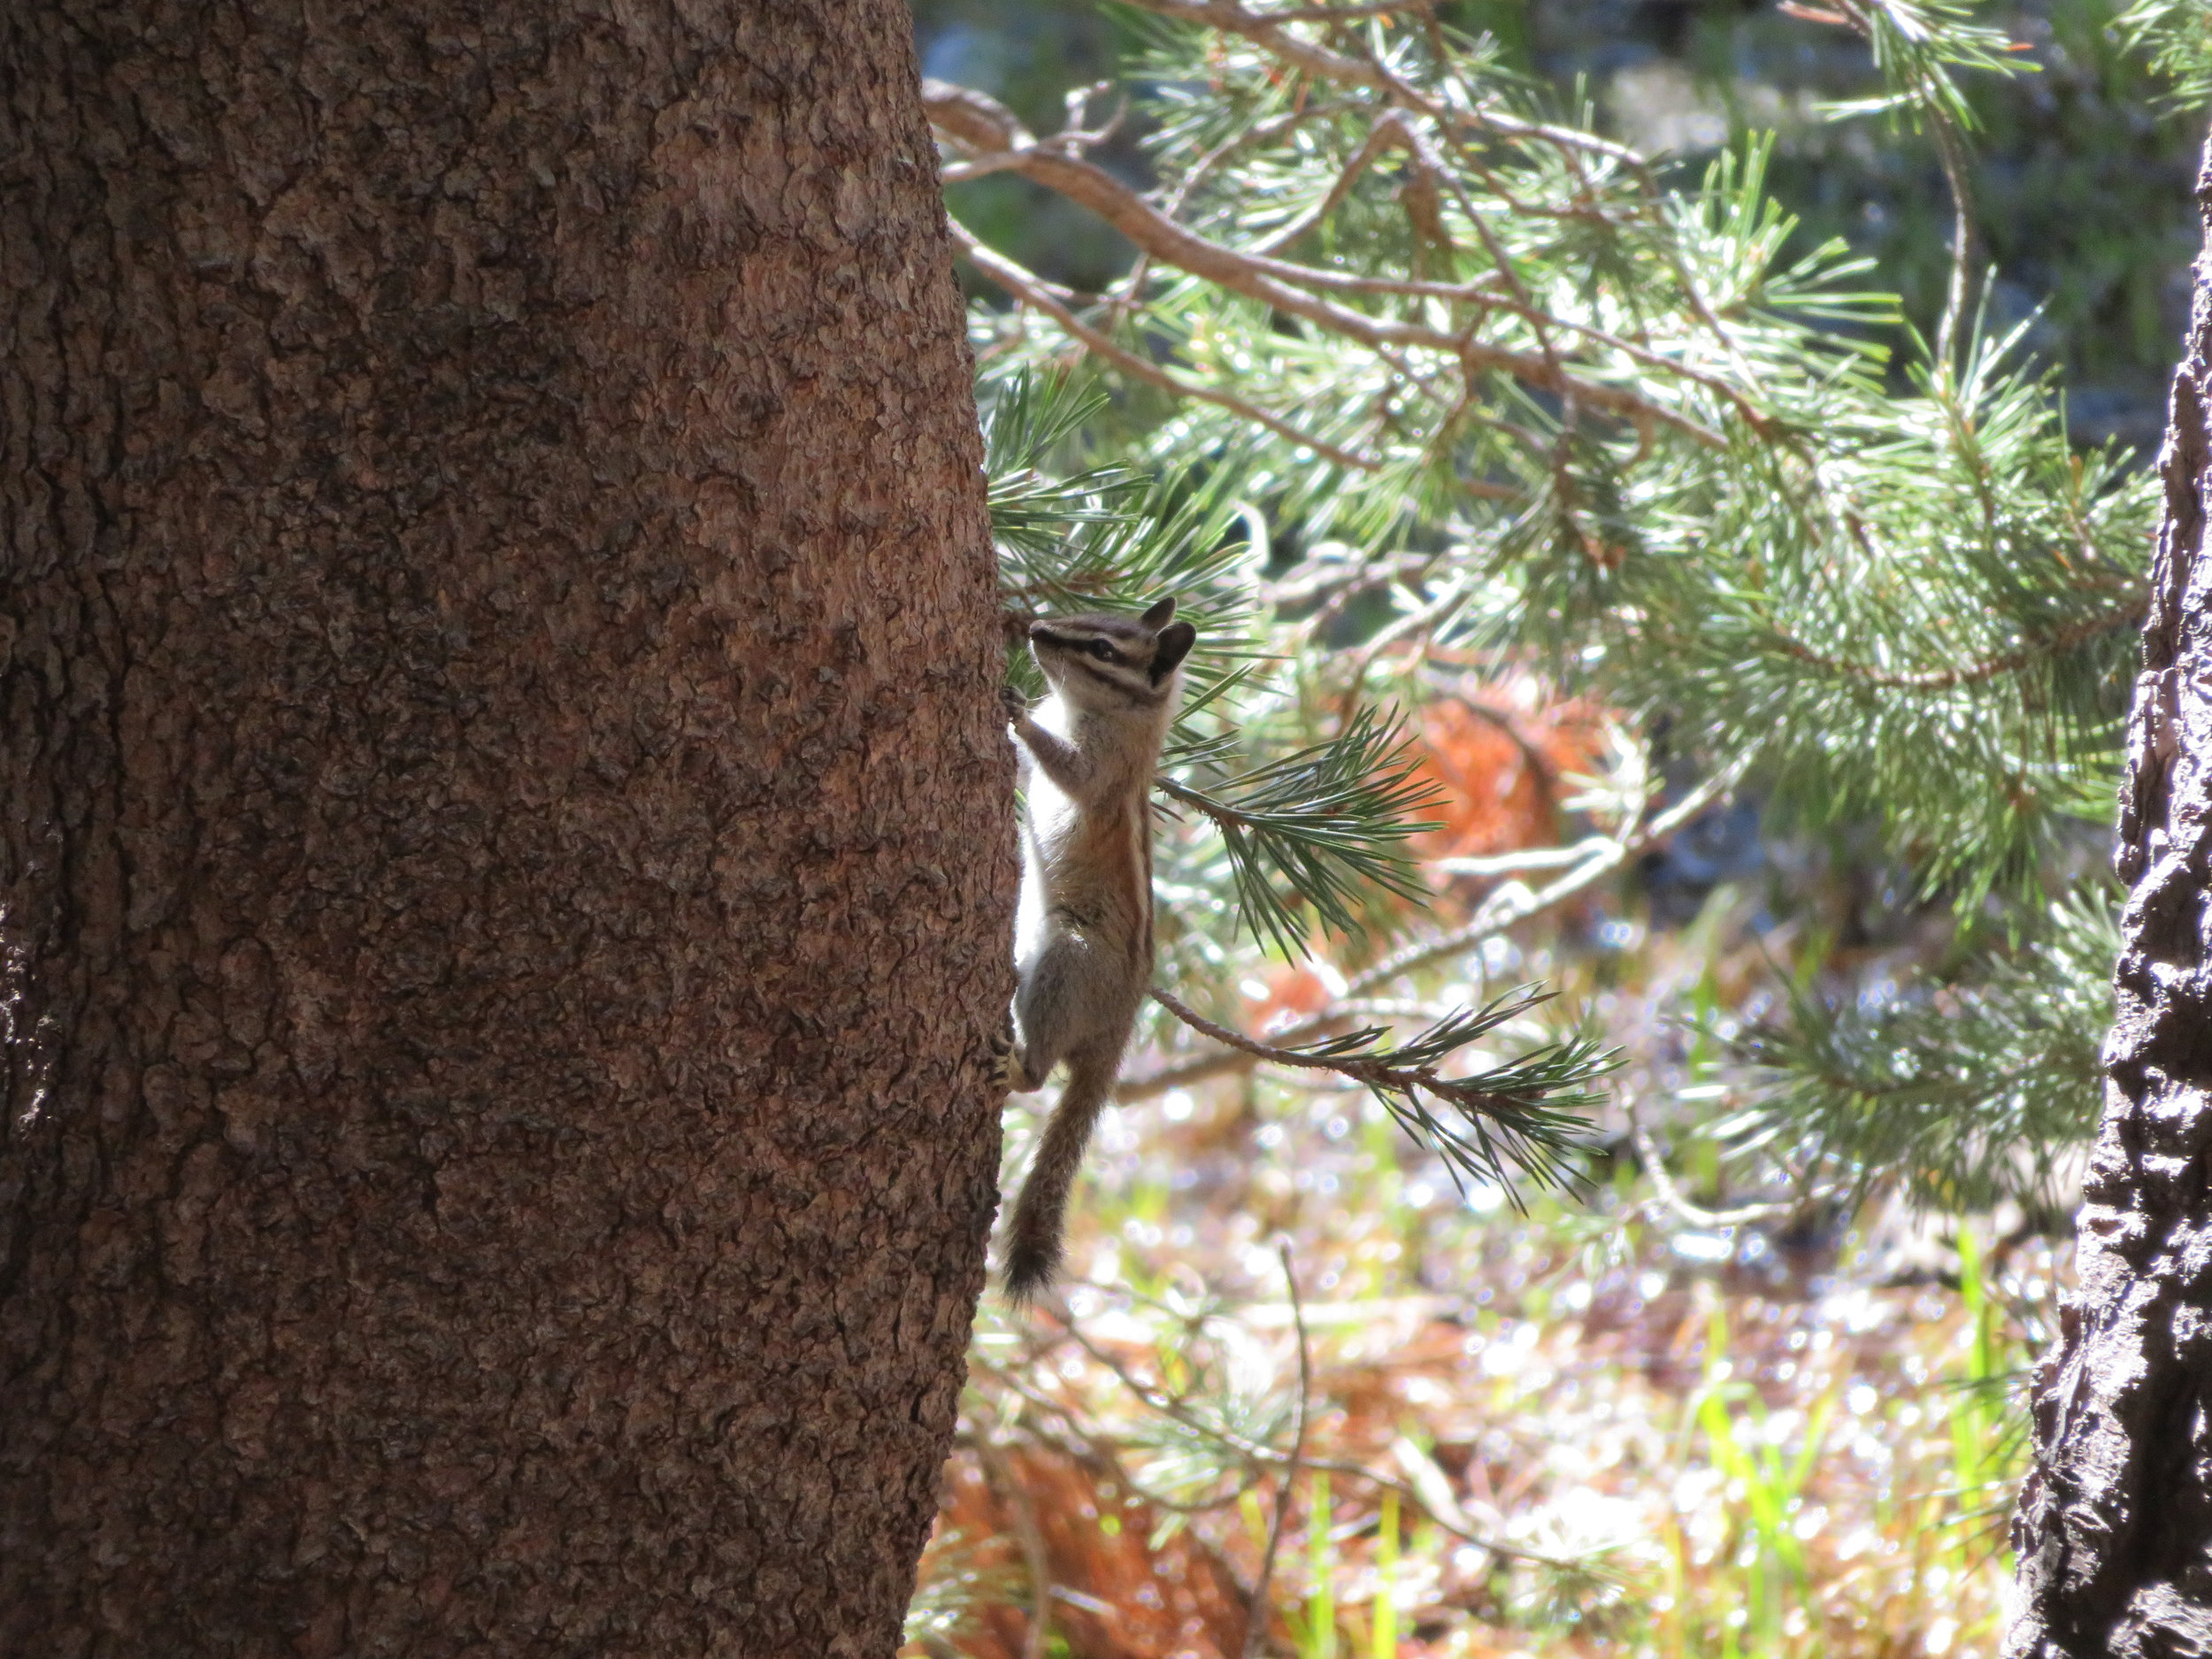 Chipmunks and chickarees ran across the trail.